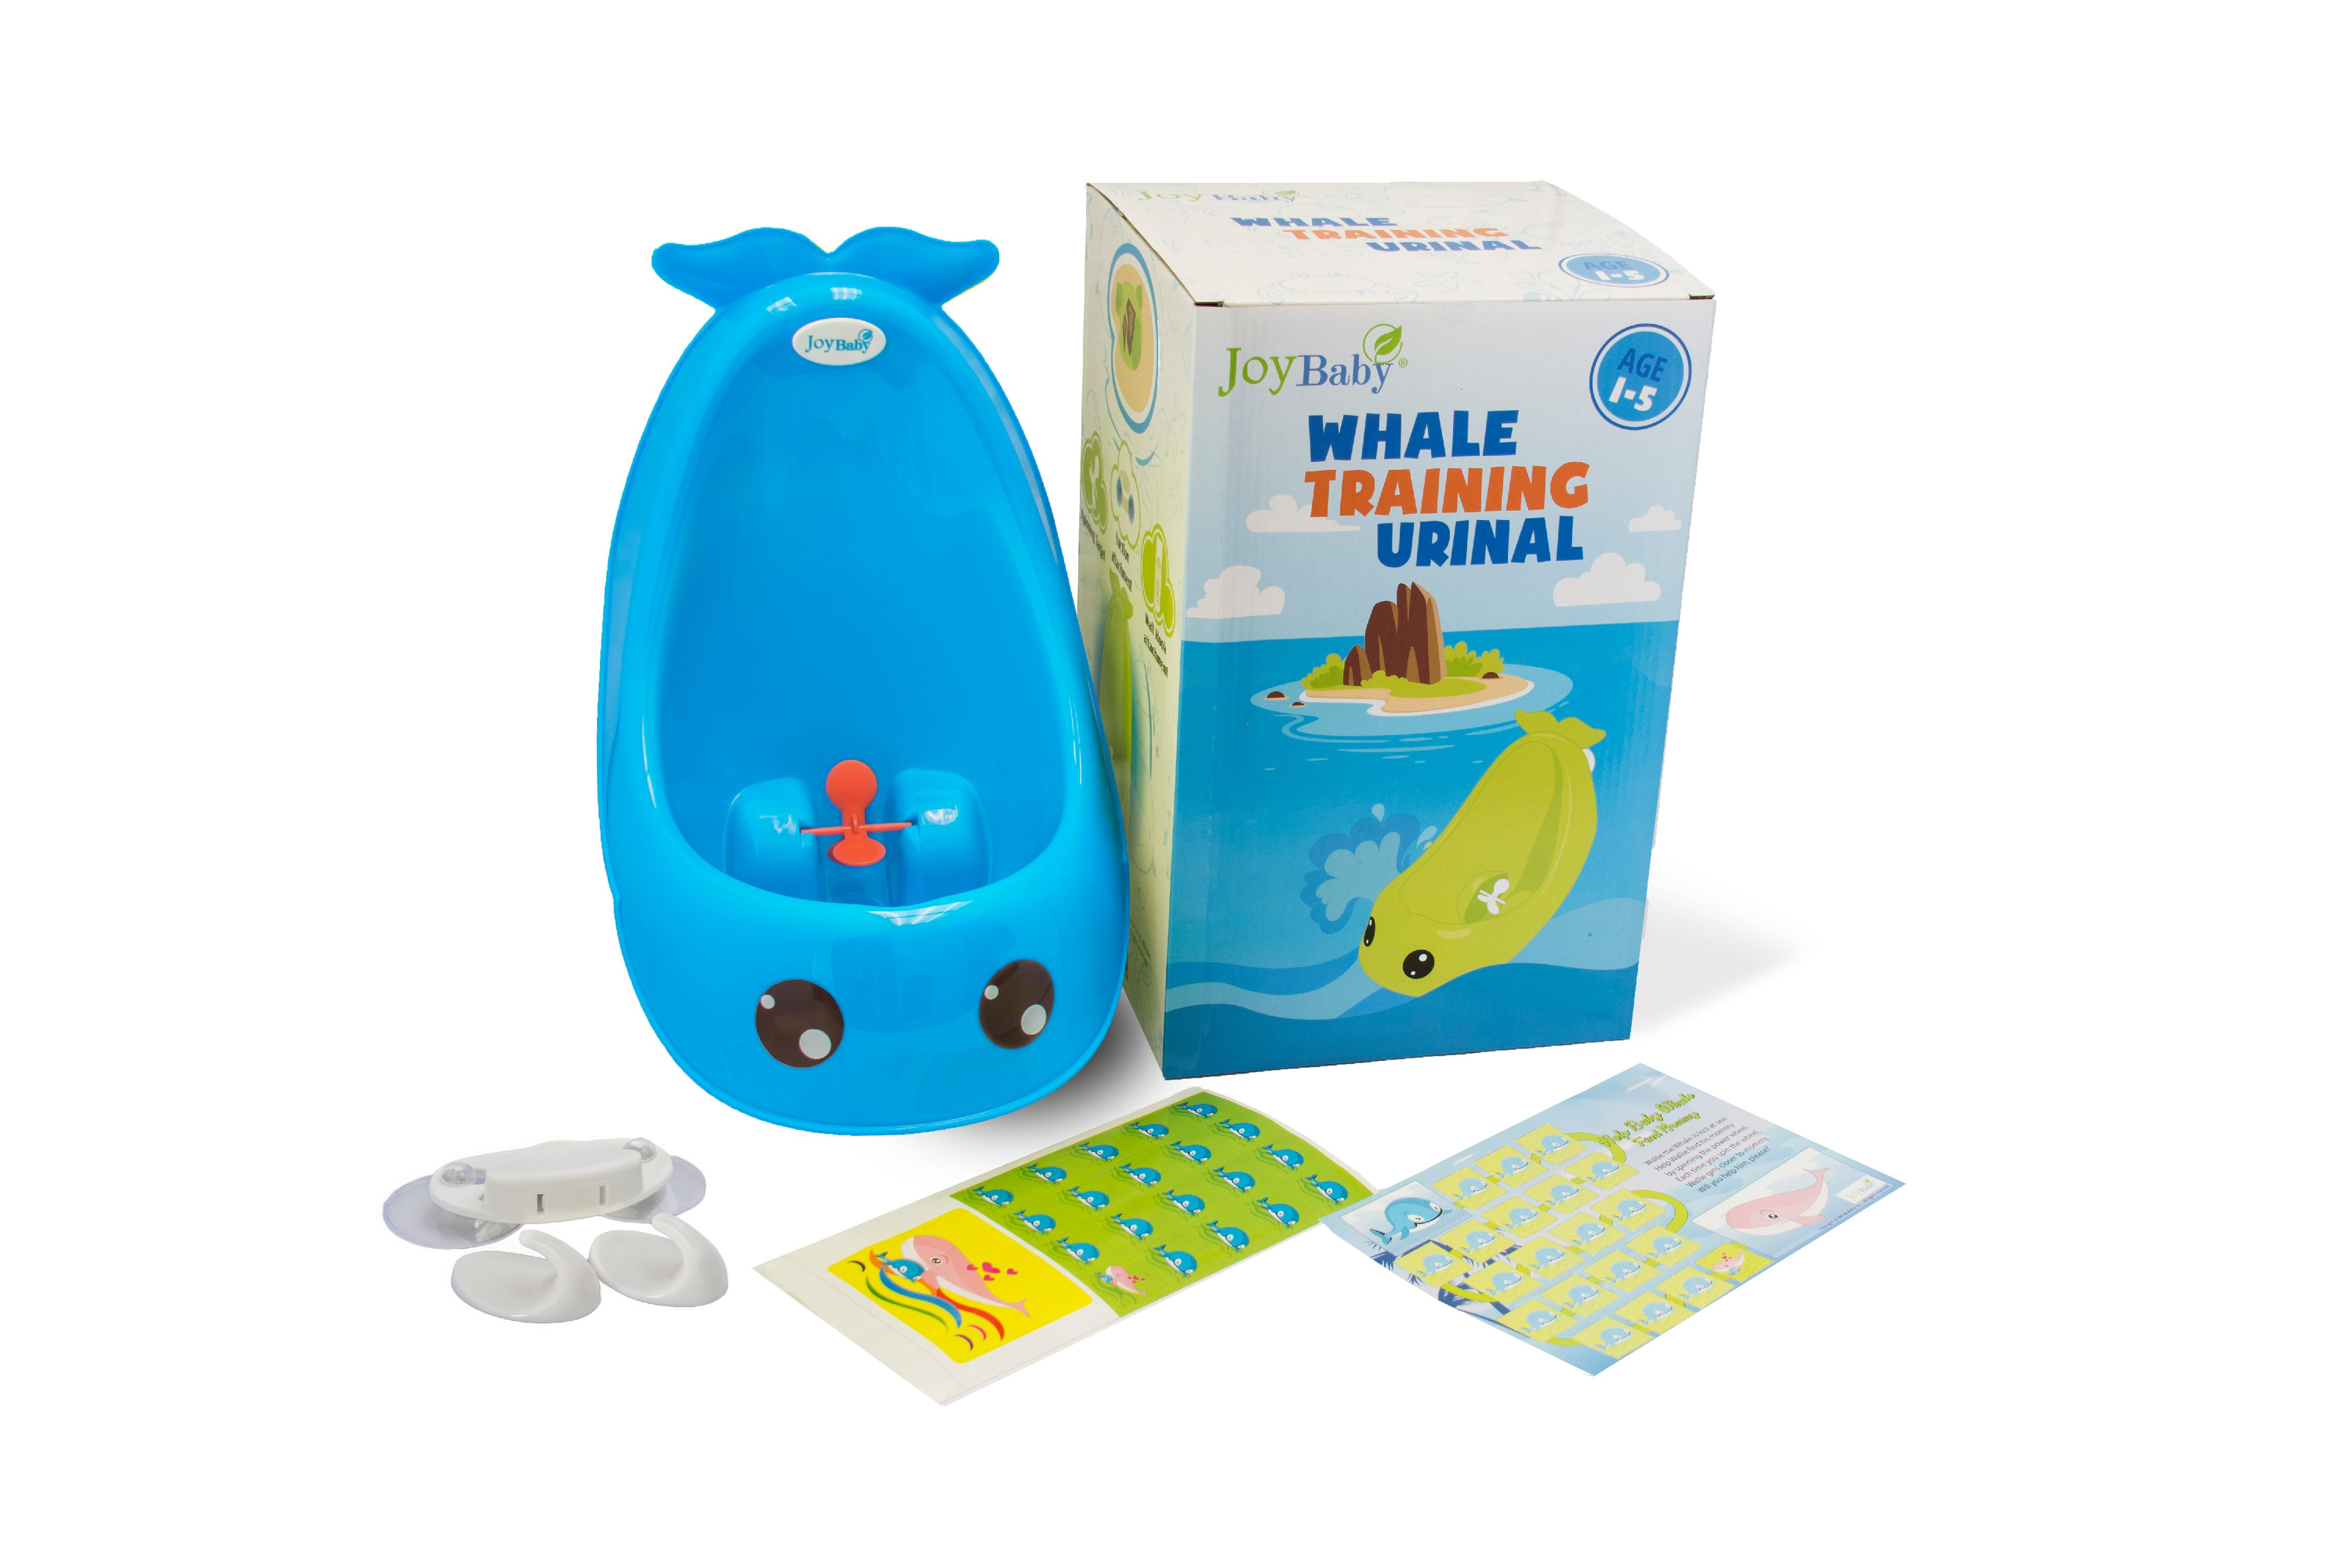 Cuddle Baby Generation 2 Boy Urinal Potty Toilet Training With